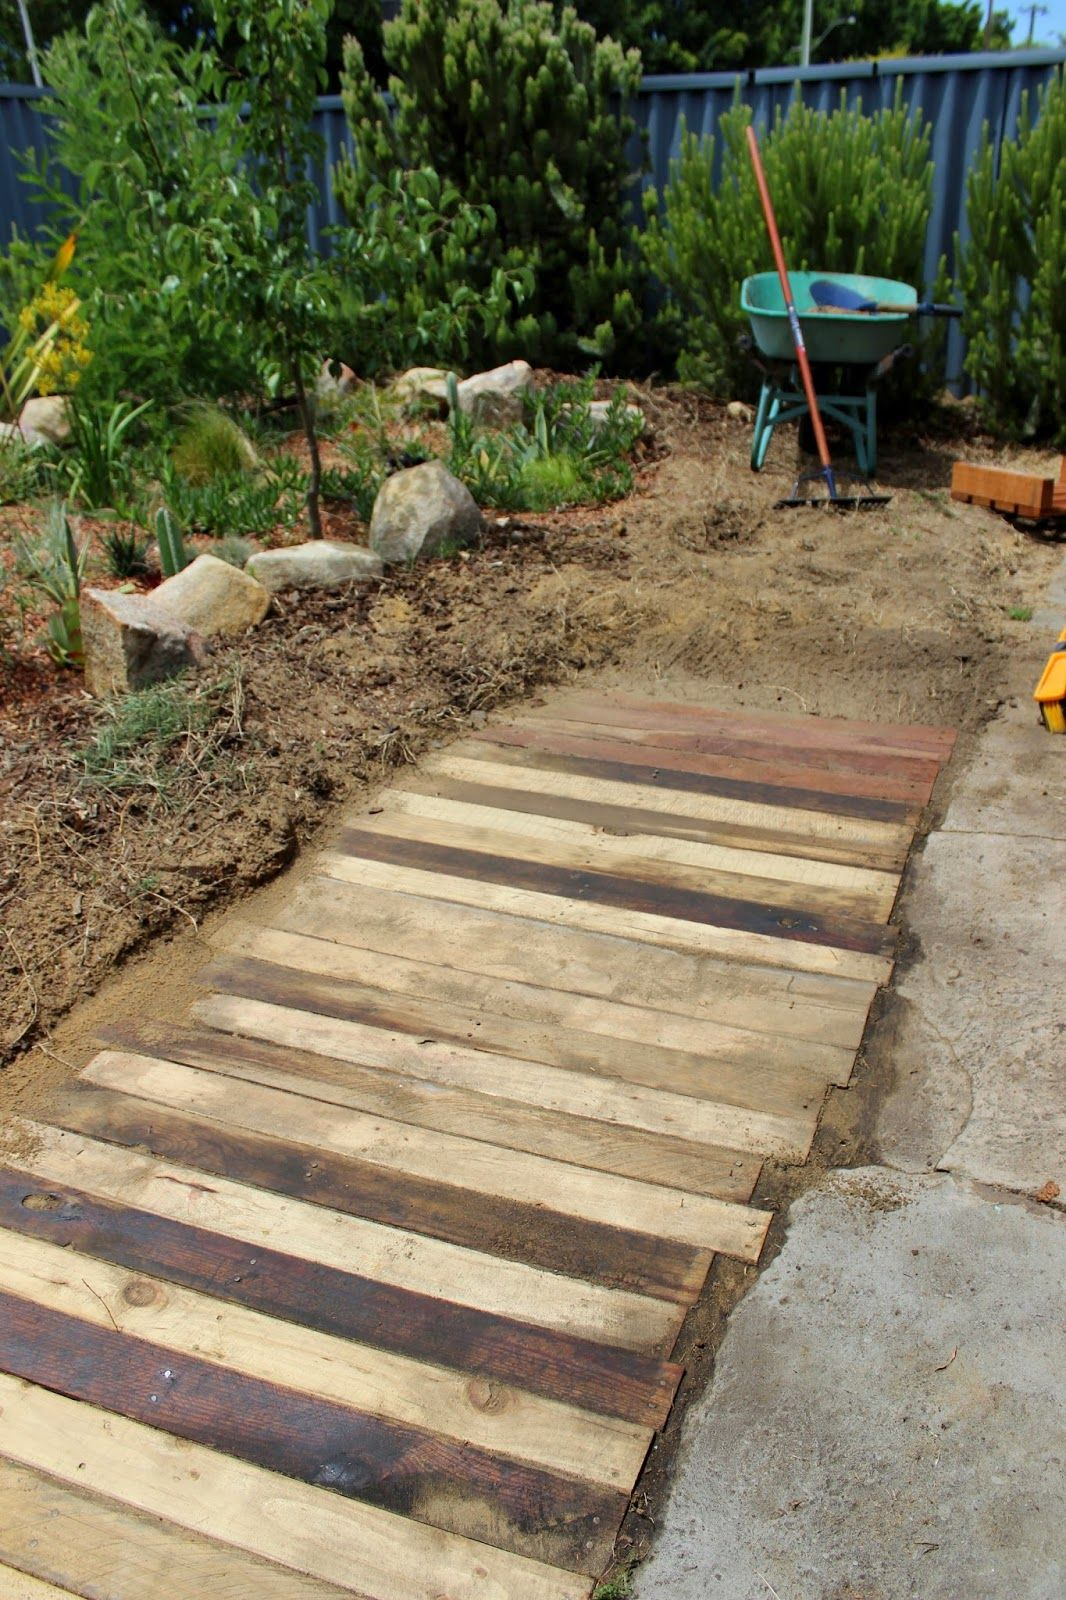 Crumbs Wooden Pallet Walkway Footpath Pallet Craft Ideas Pinterest Pallet Walkway Wooden